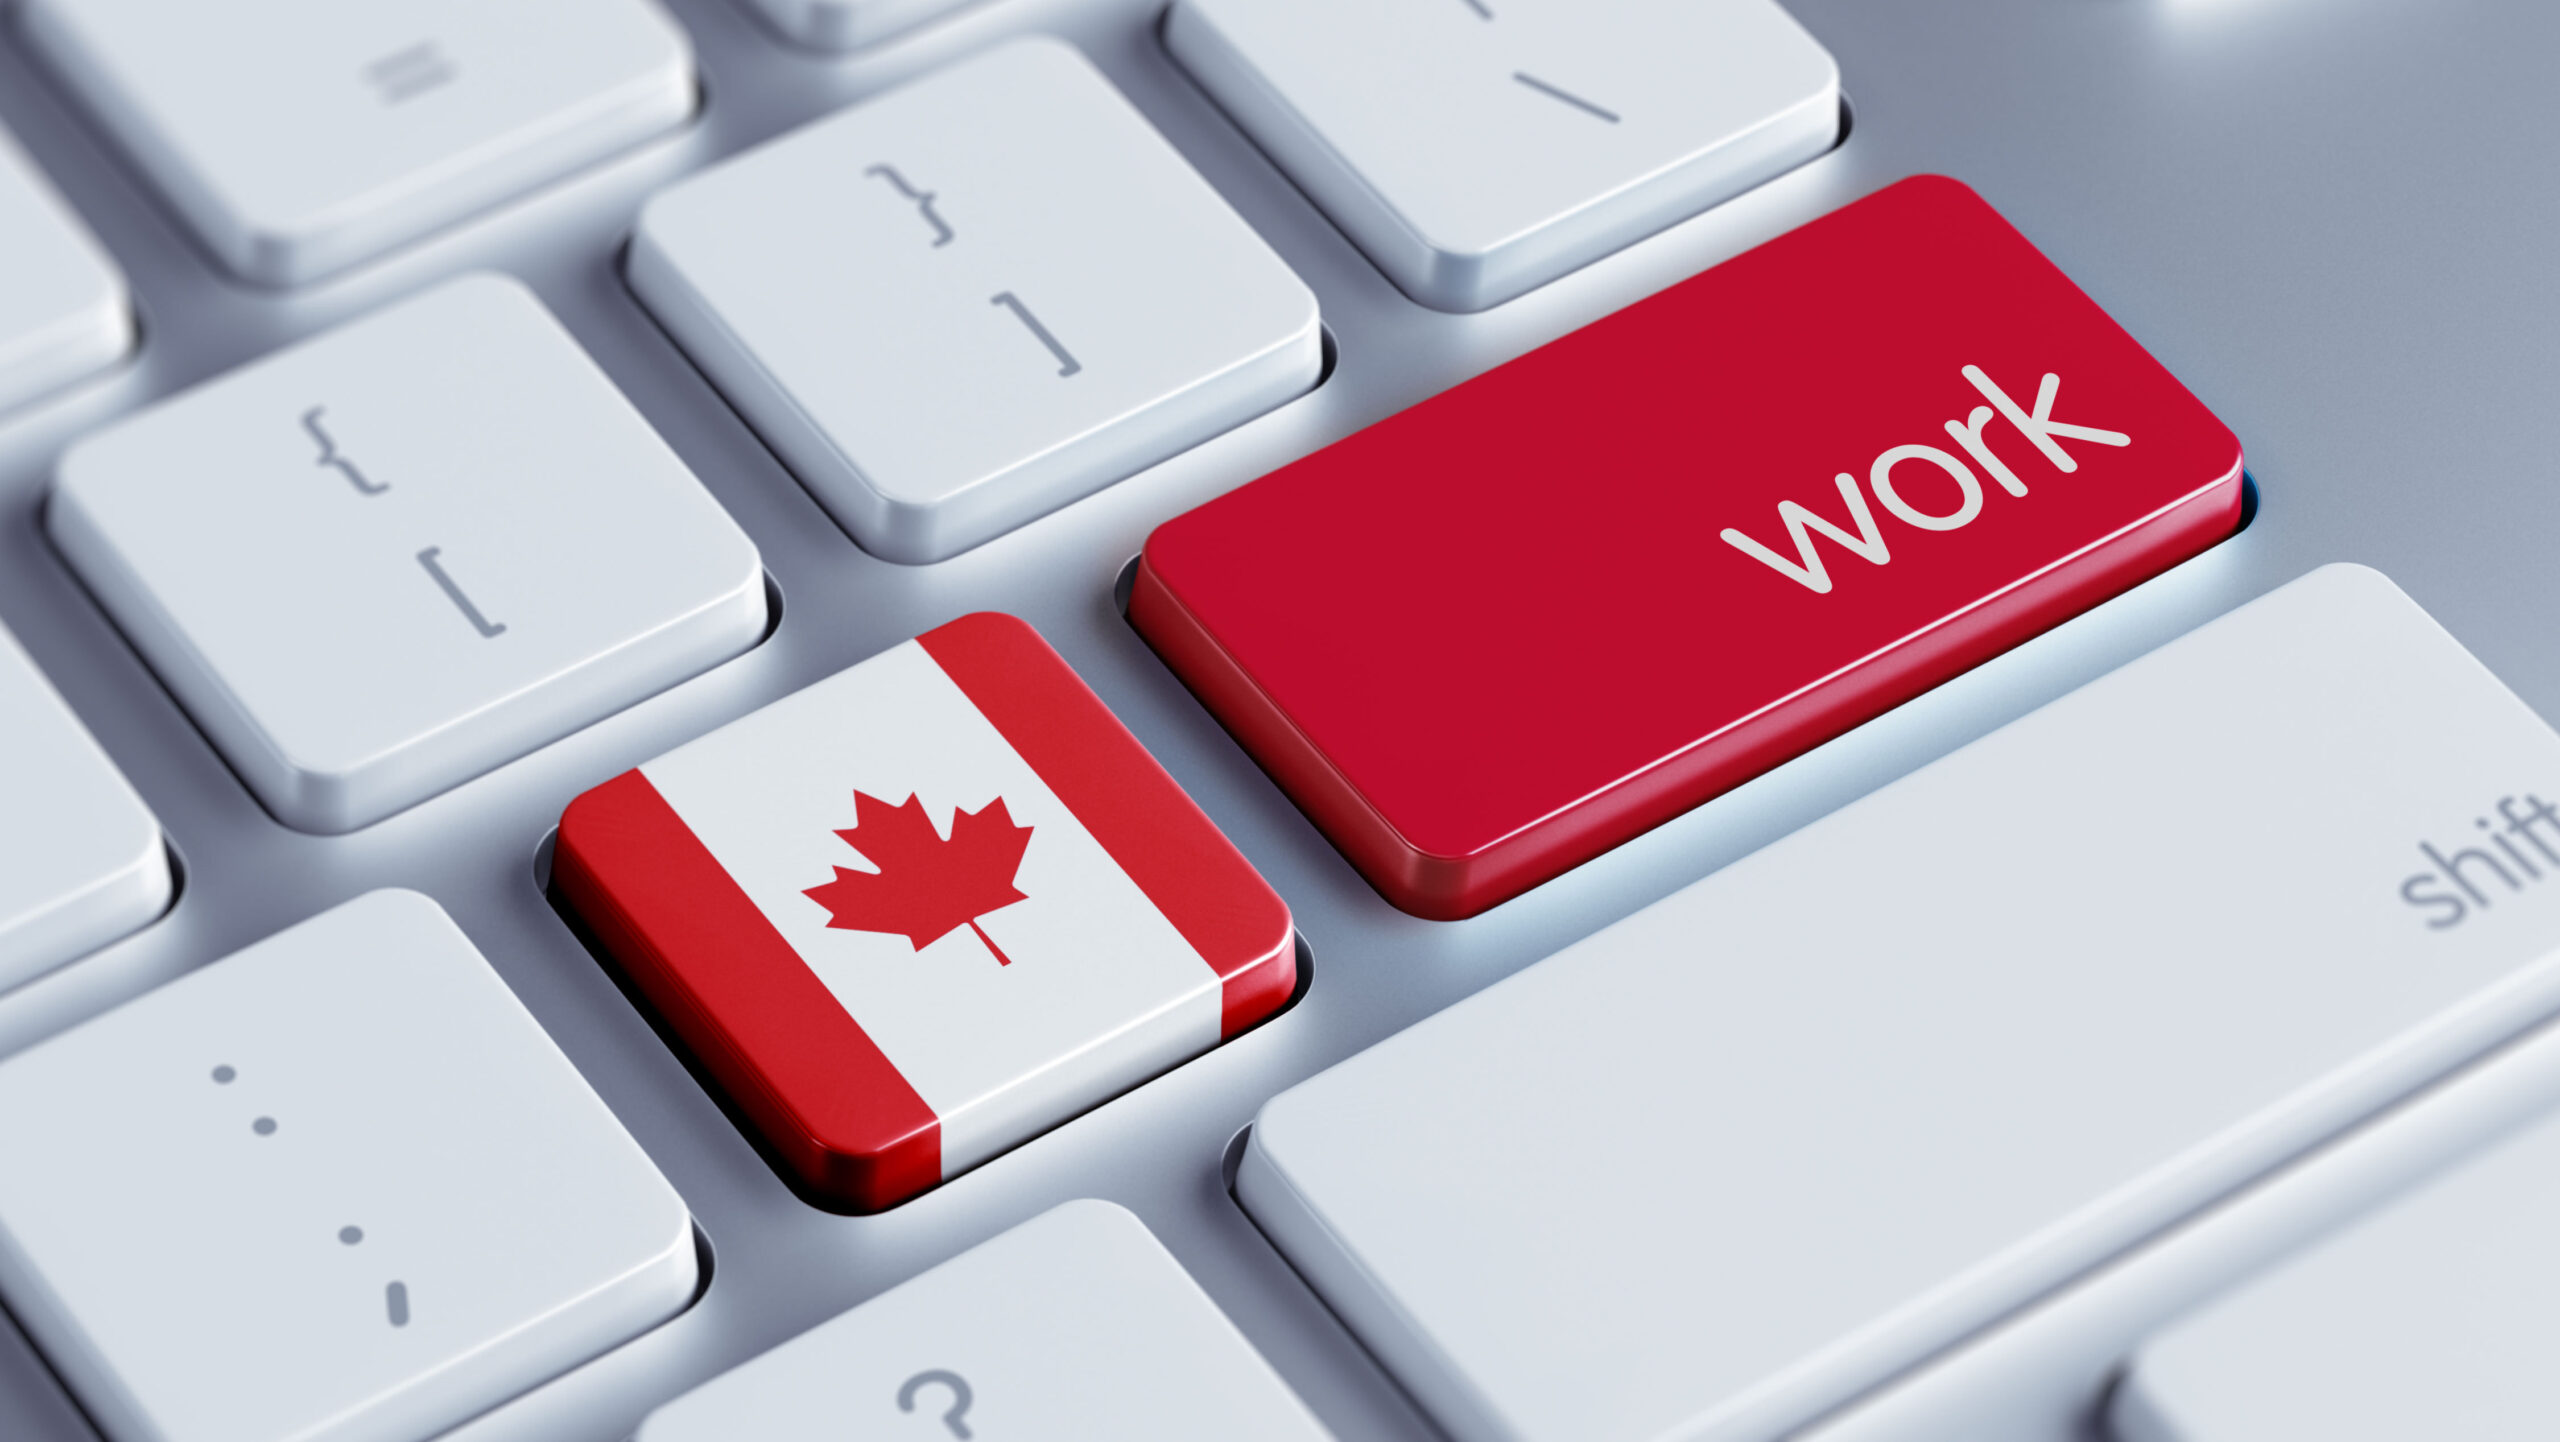 REMARKABLE JOB OPENINGS FOR 9 OCCUPATIONS IN ONTARIO DUE TO THE PANDEMIC